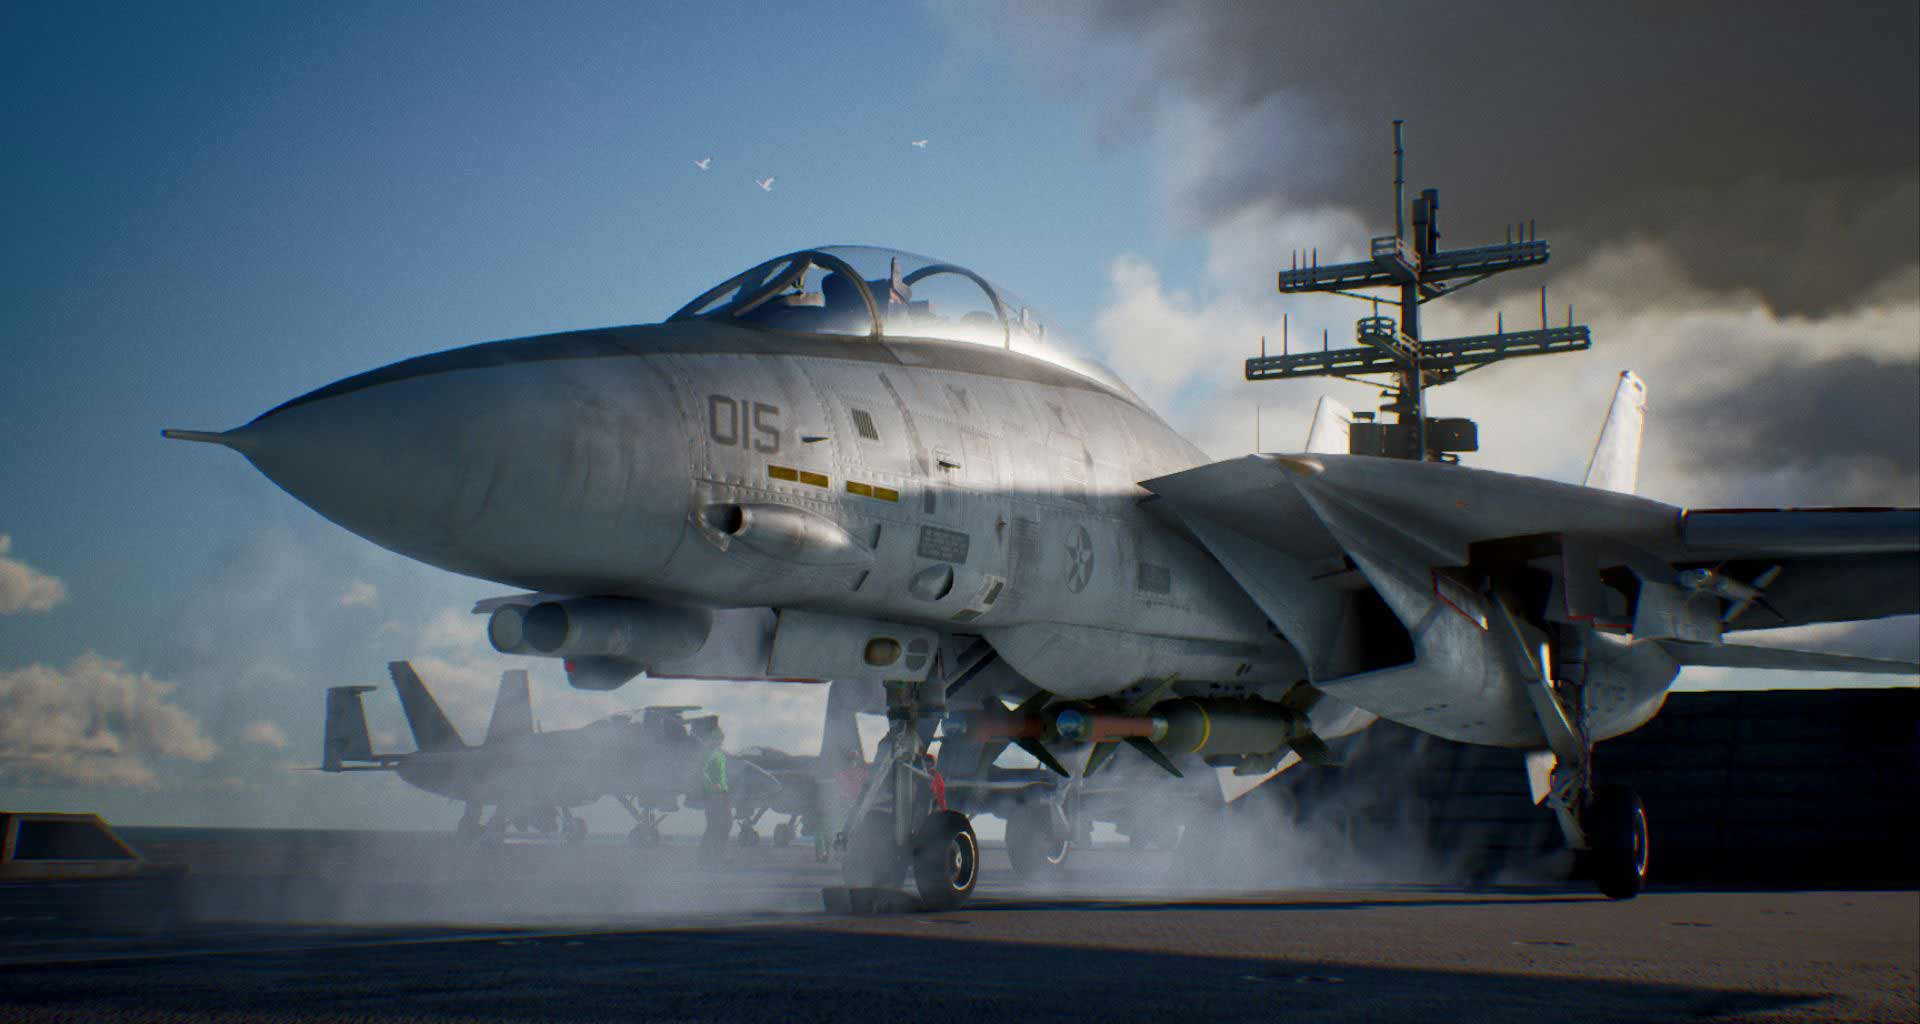 Ace Combat٬ Ace Combat 7: Skies Unknown٬ Bandai Namco٬ Ace Combat 7٬ PS4٬ اطلاعات بازی Ace Combat 7: Skies Unknown٬ تاریخ انتشار بازی Ace Combat 7: Skies Unknown٬ تاریخ عرضه بازی Ace Combat 7: Skies Unknown٬